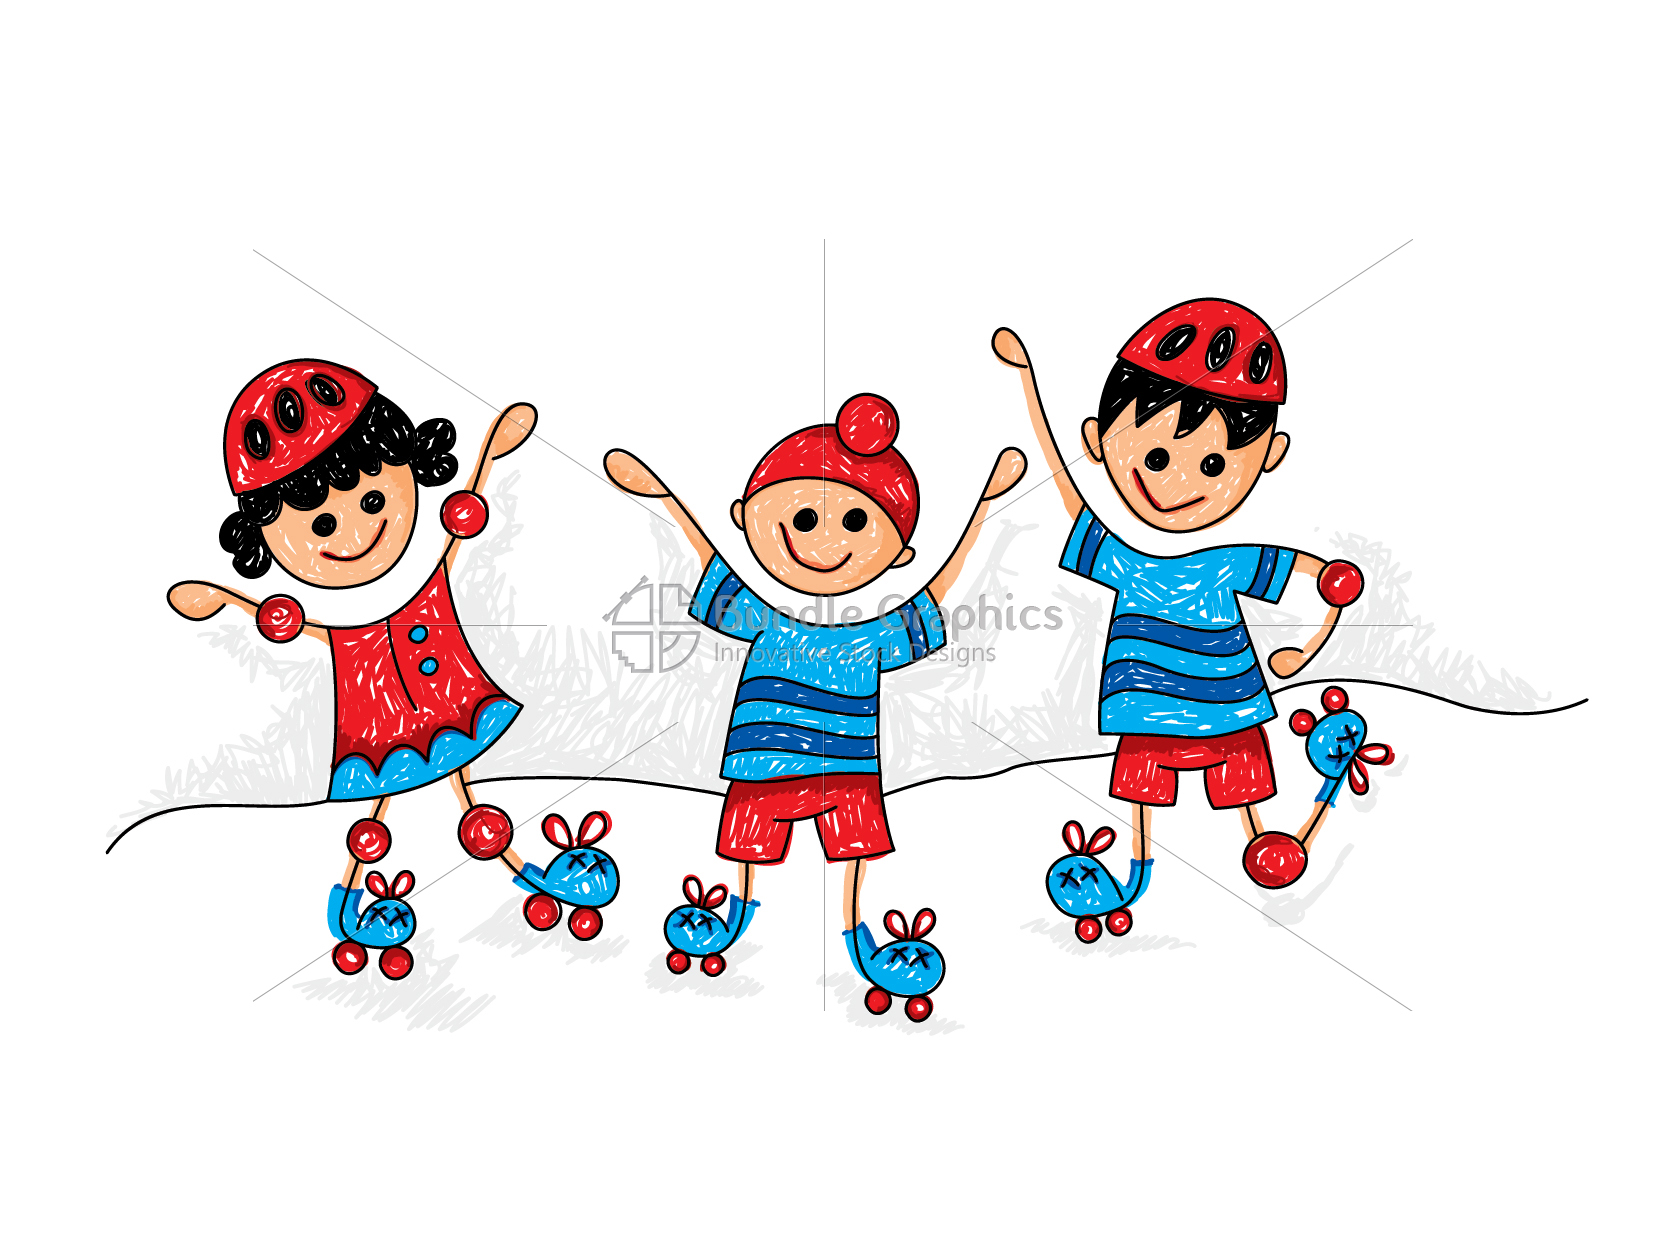 Kids Roller Skating Graphical Illustration example image 1